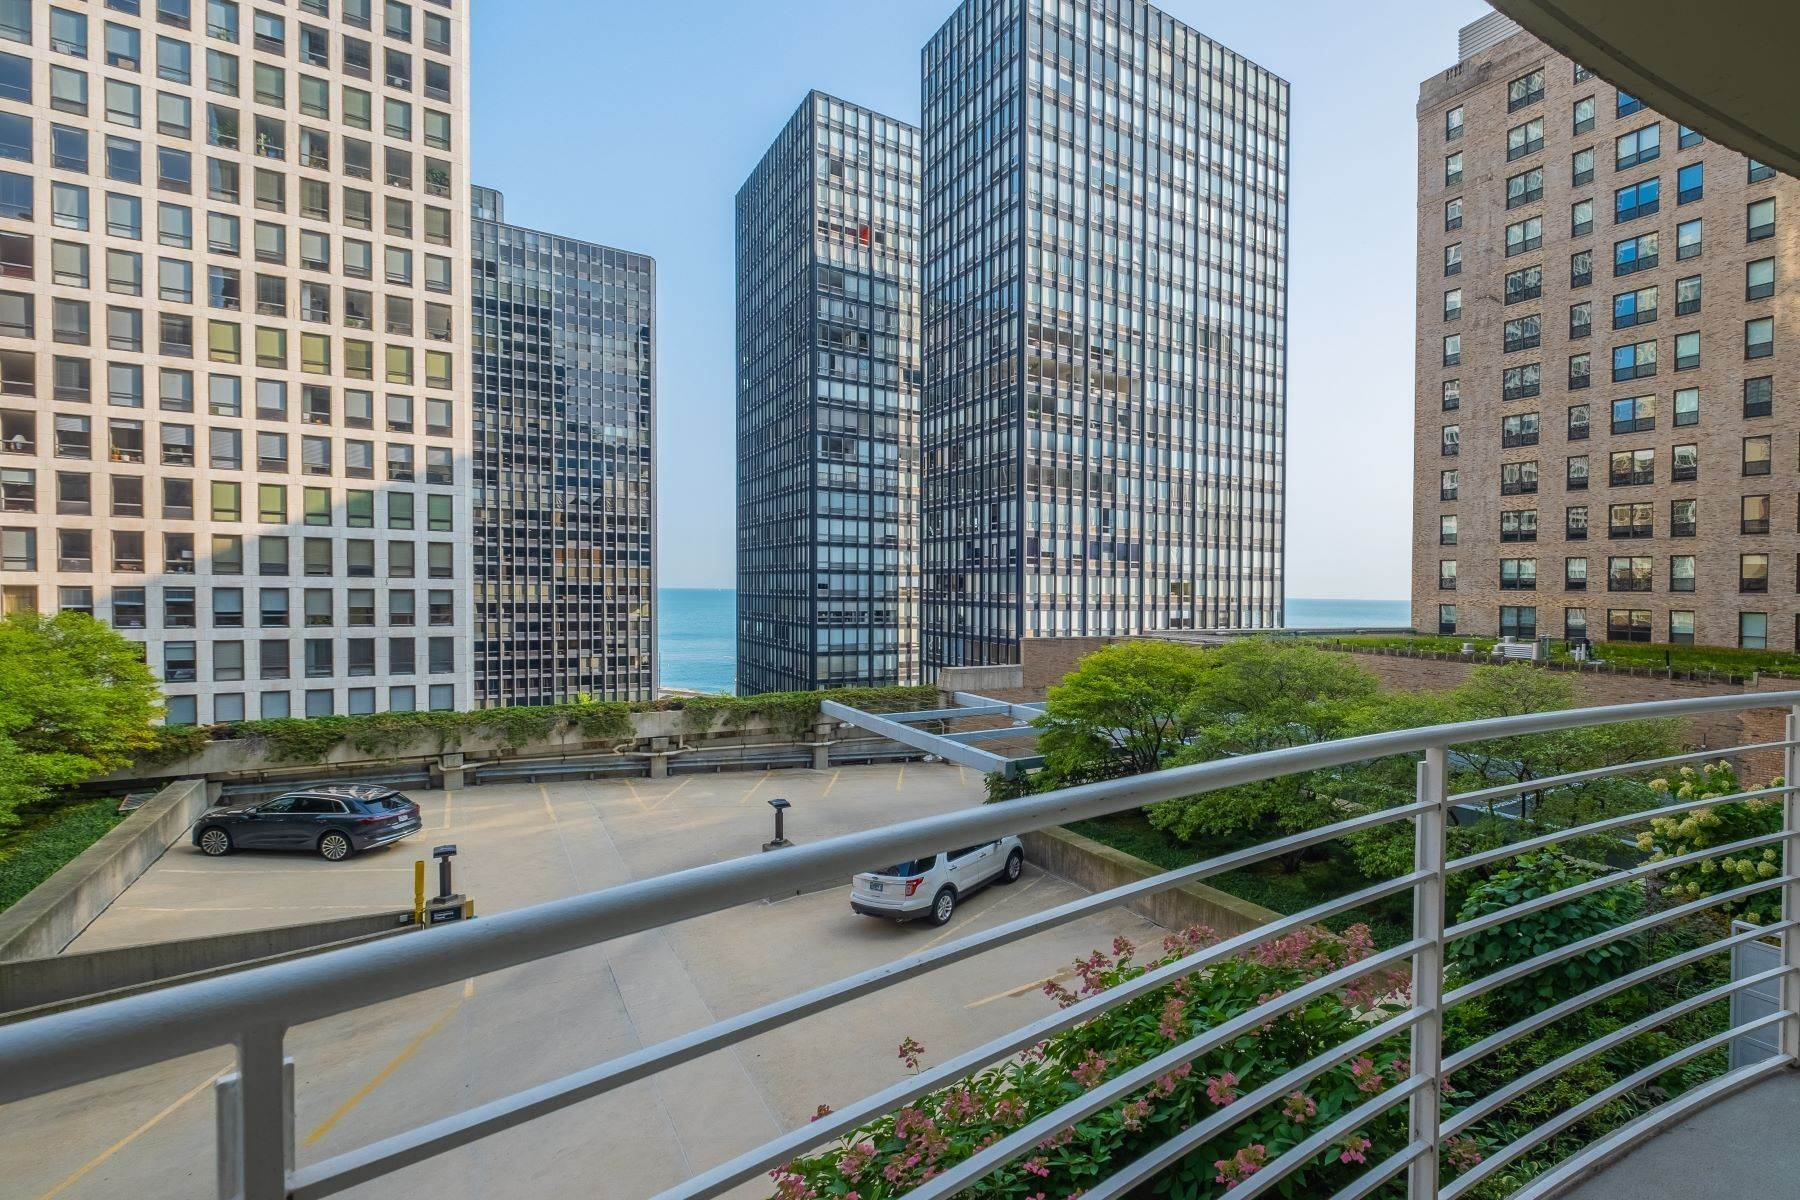 Property for Sale at Large Condo 250 E. Pearson Street, Unit 904 Chicago, Illinois 60611 United States